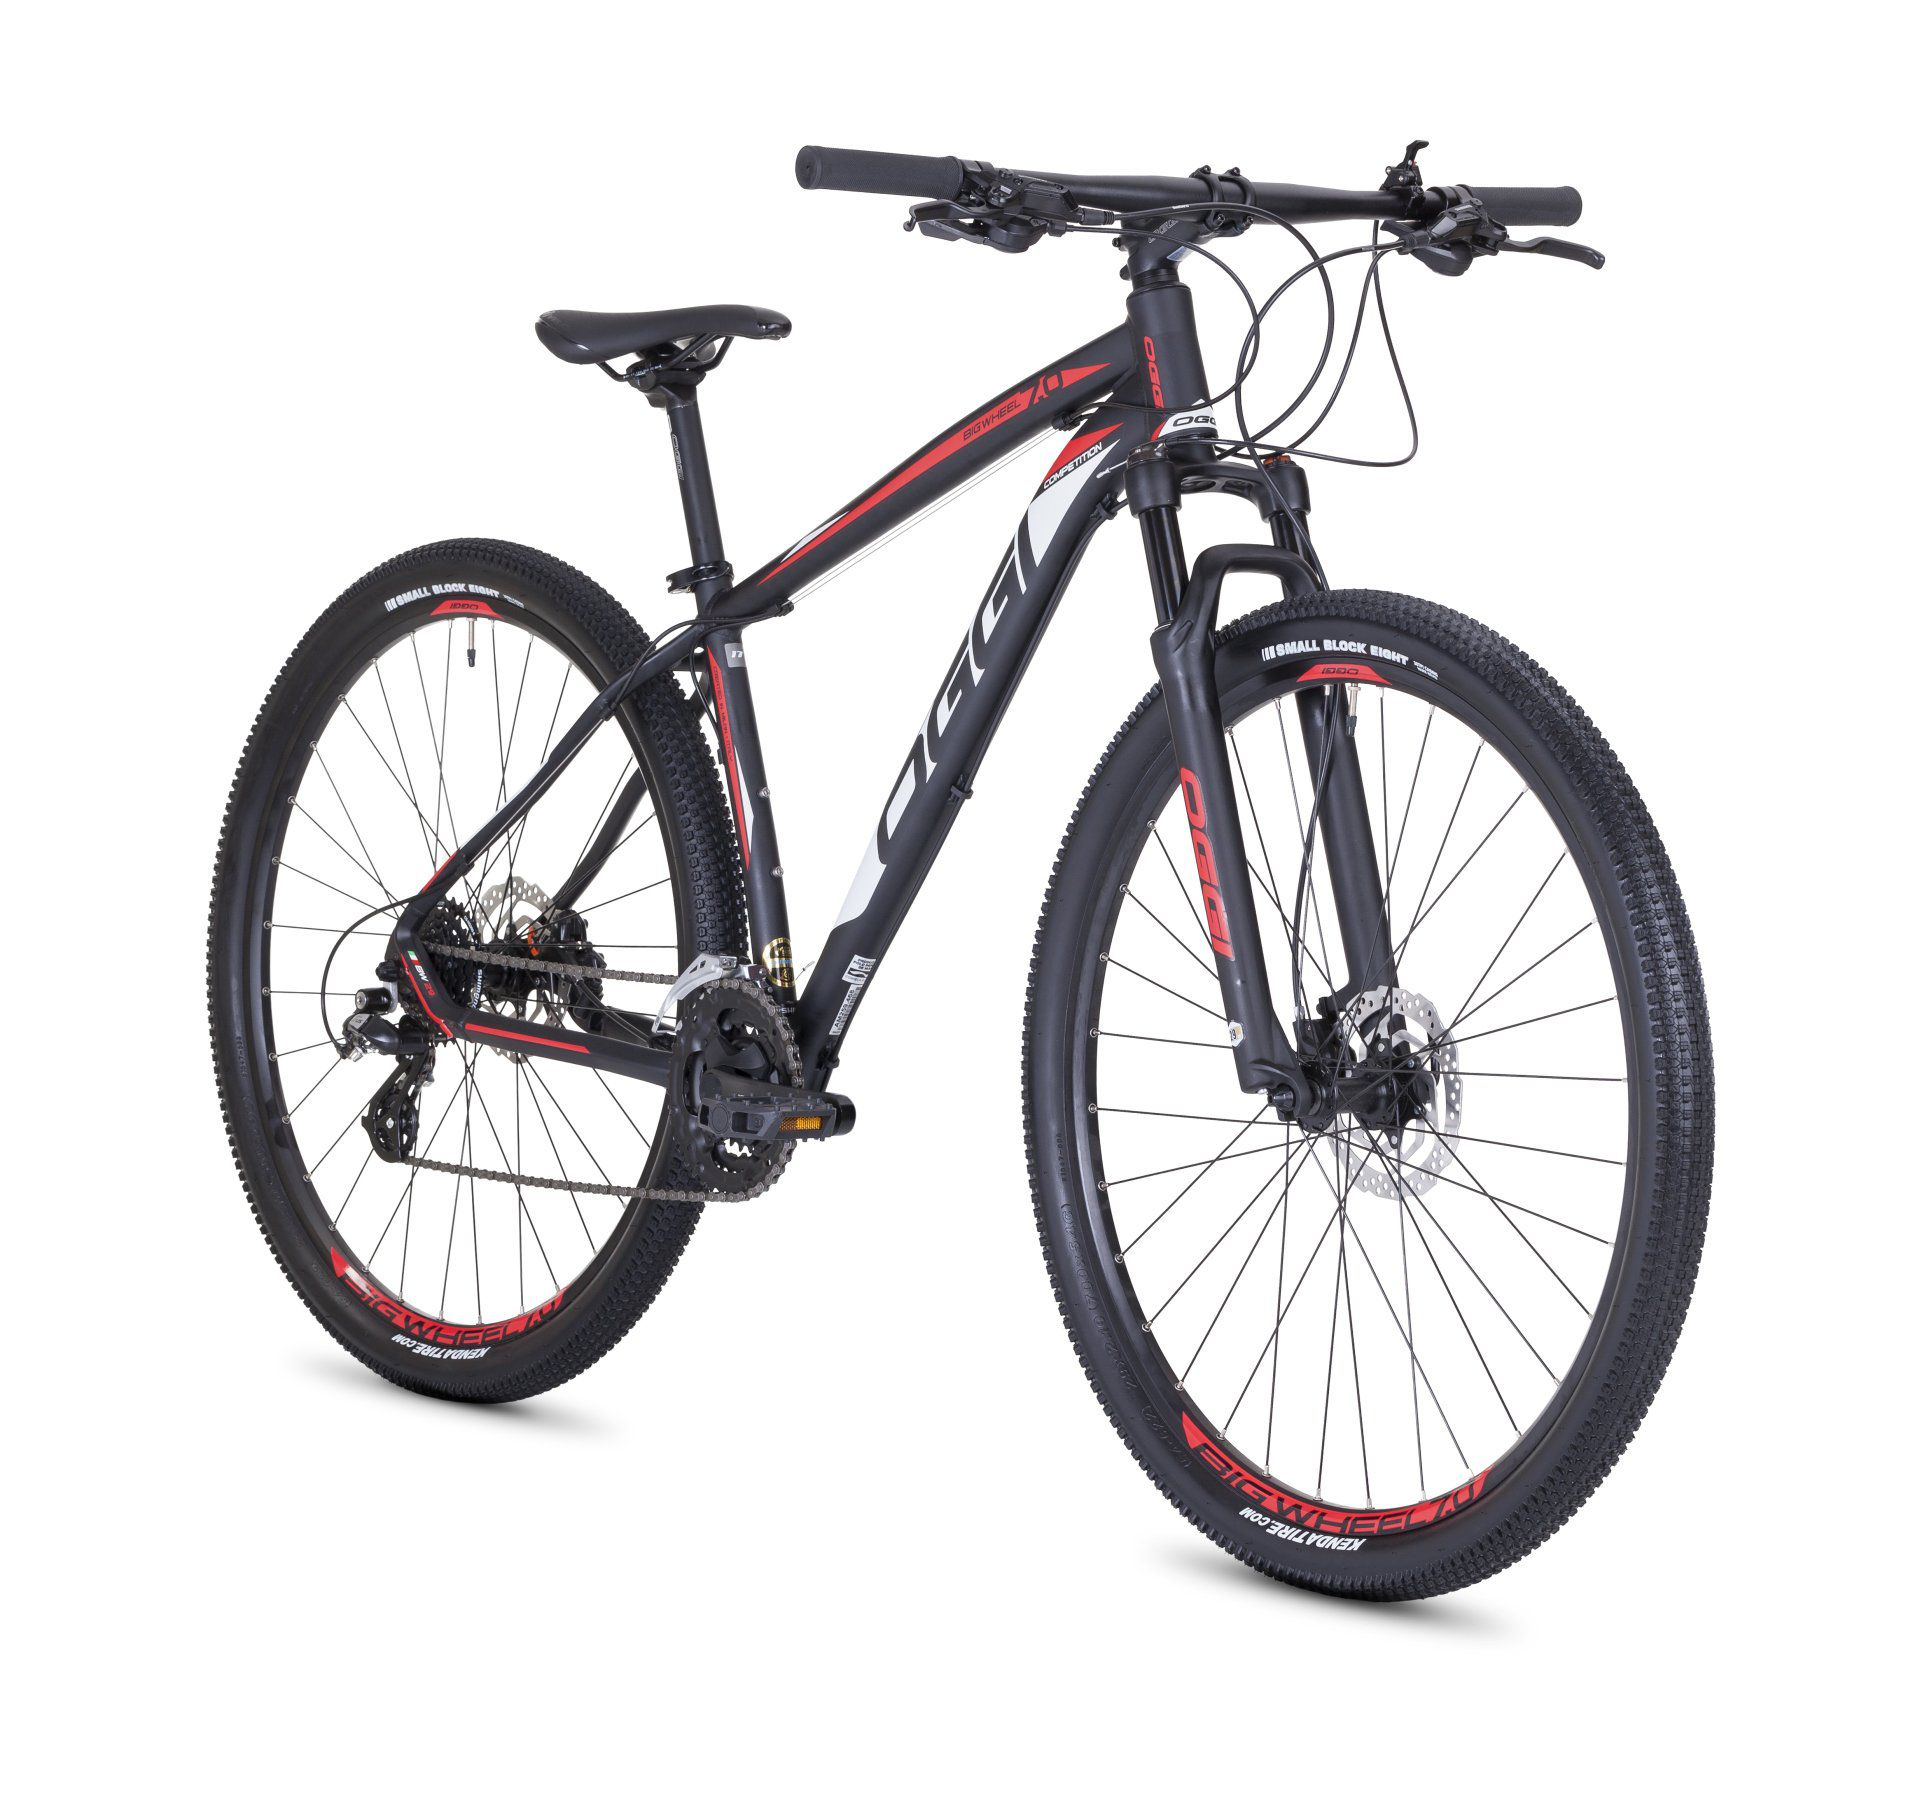 Bicicleta Oggi Big Wheel 7.0 29 2018 Pto/Verm